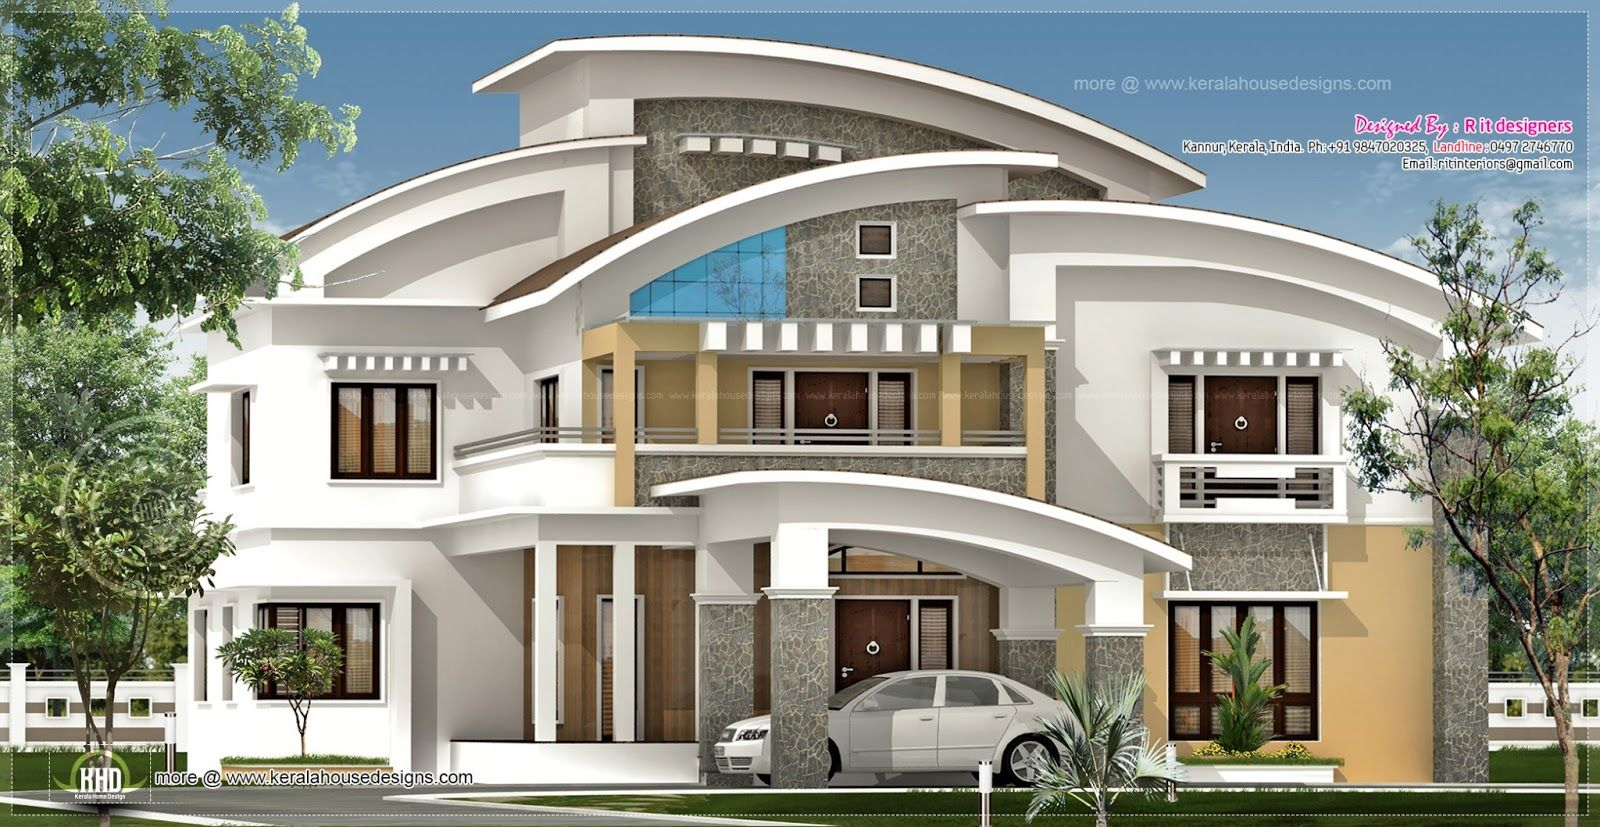 Awesome luxury homes plans 8 french country luxury home Mansion house designs